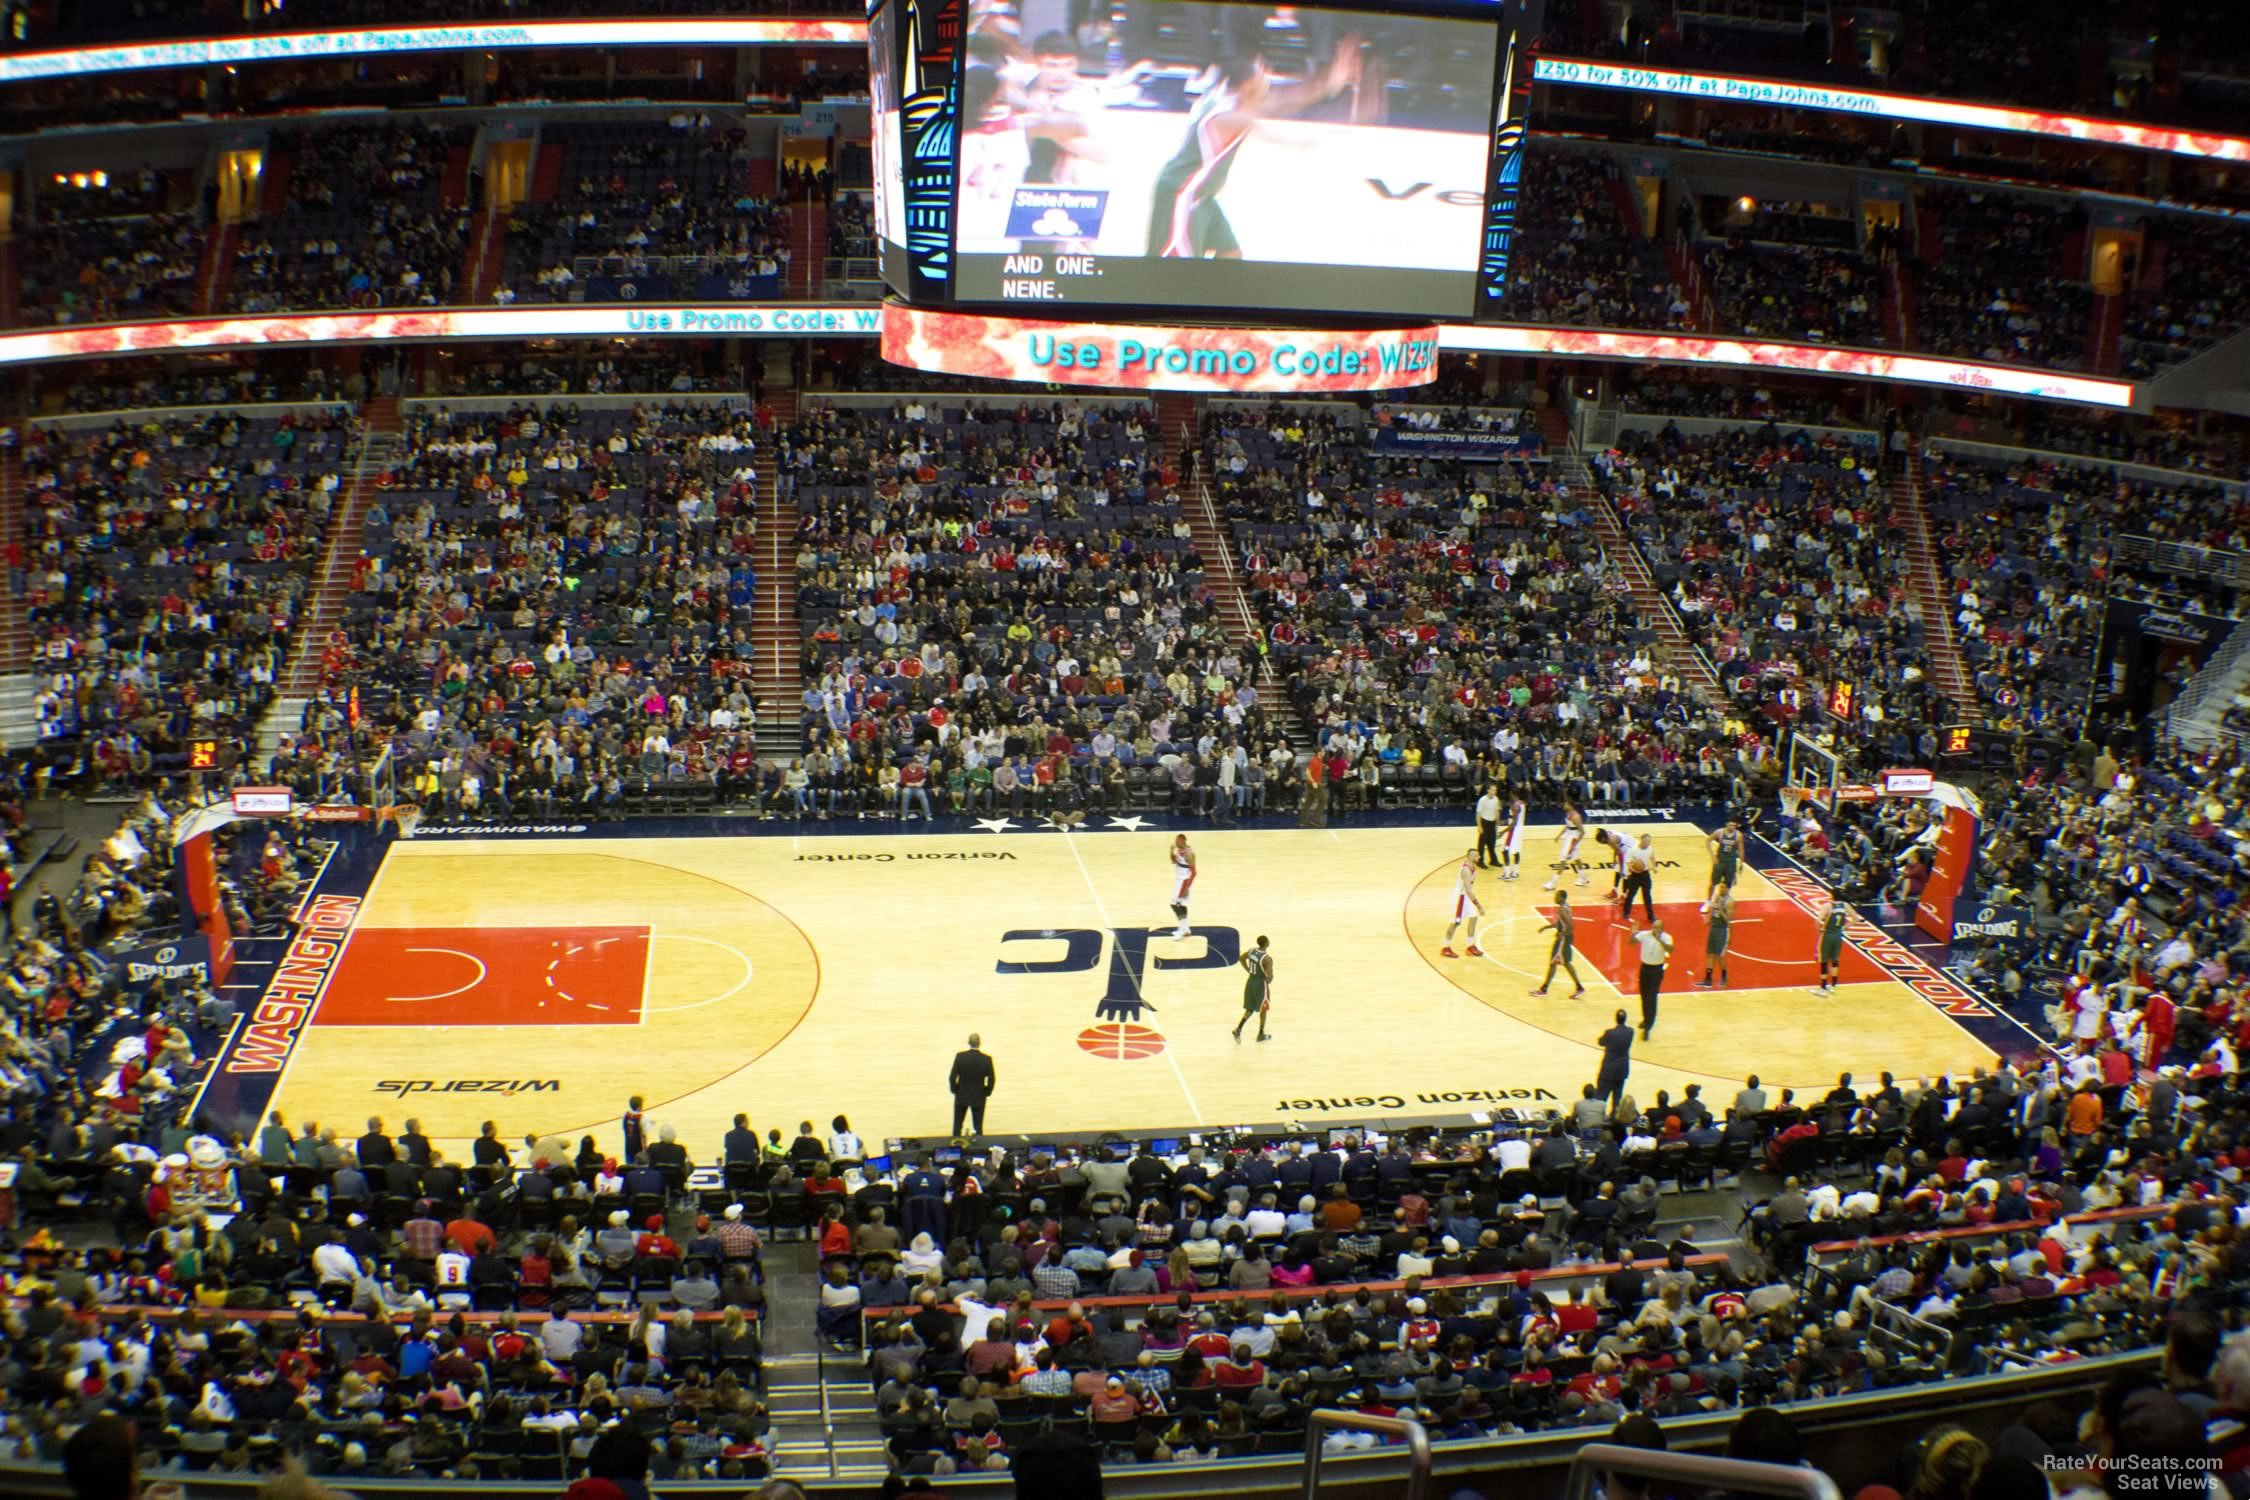 Section 229 seat view